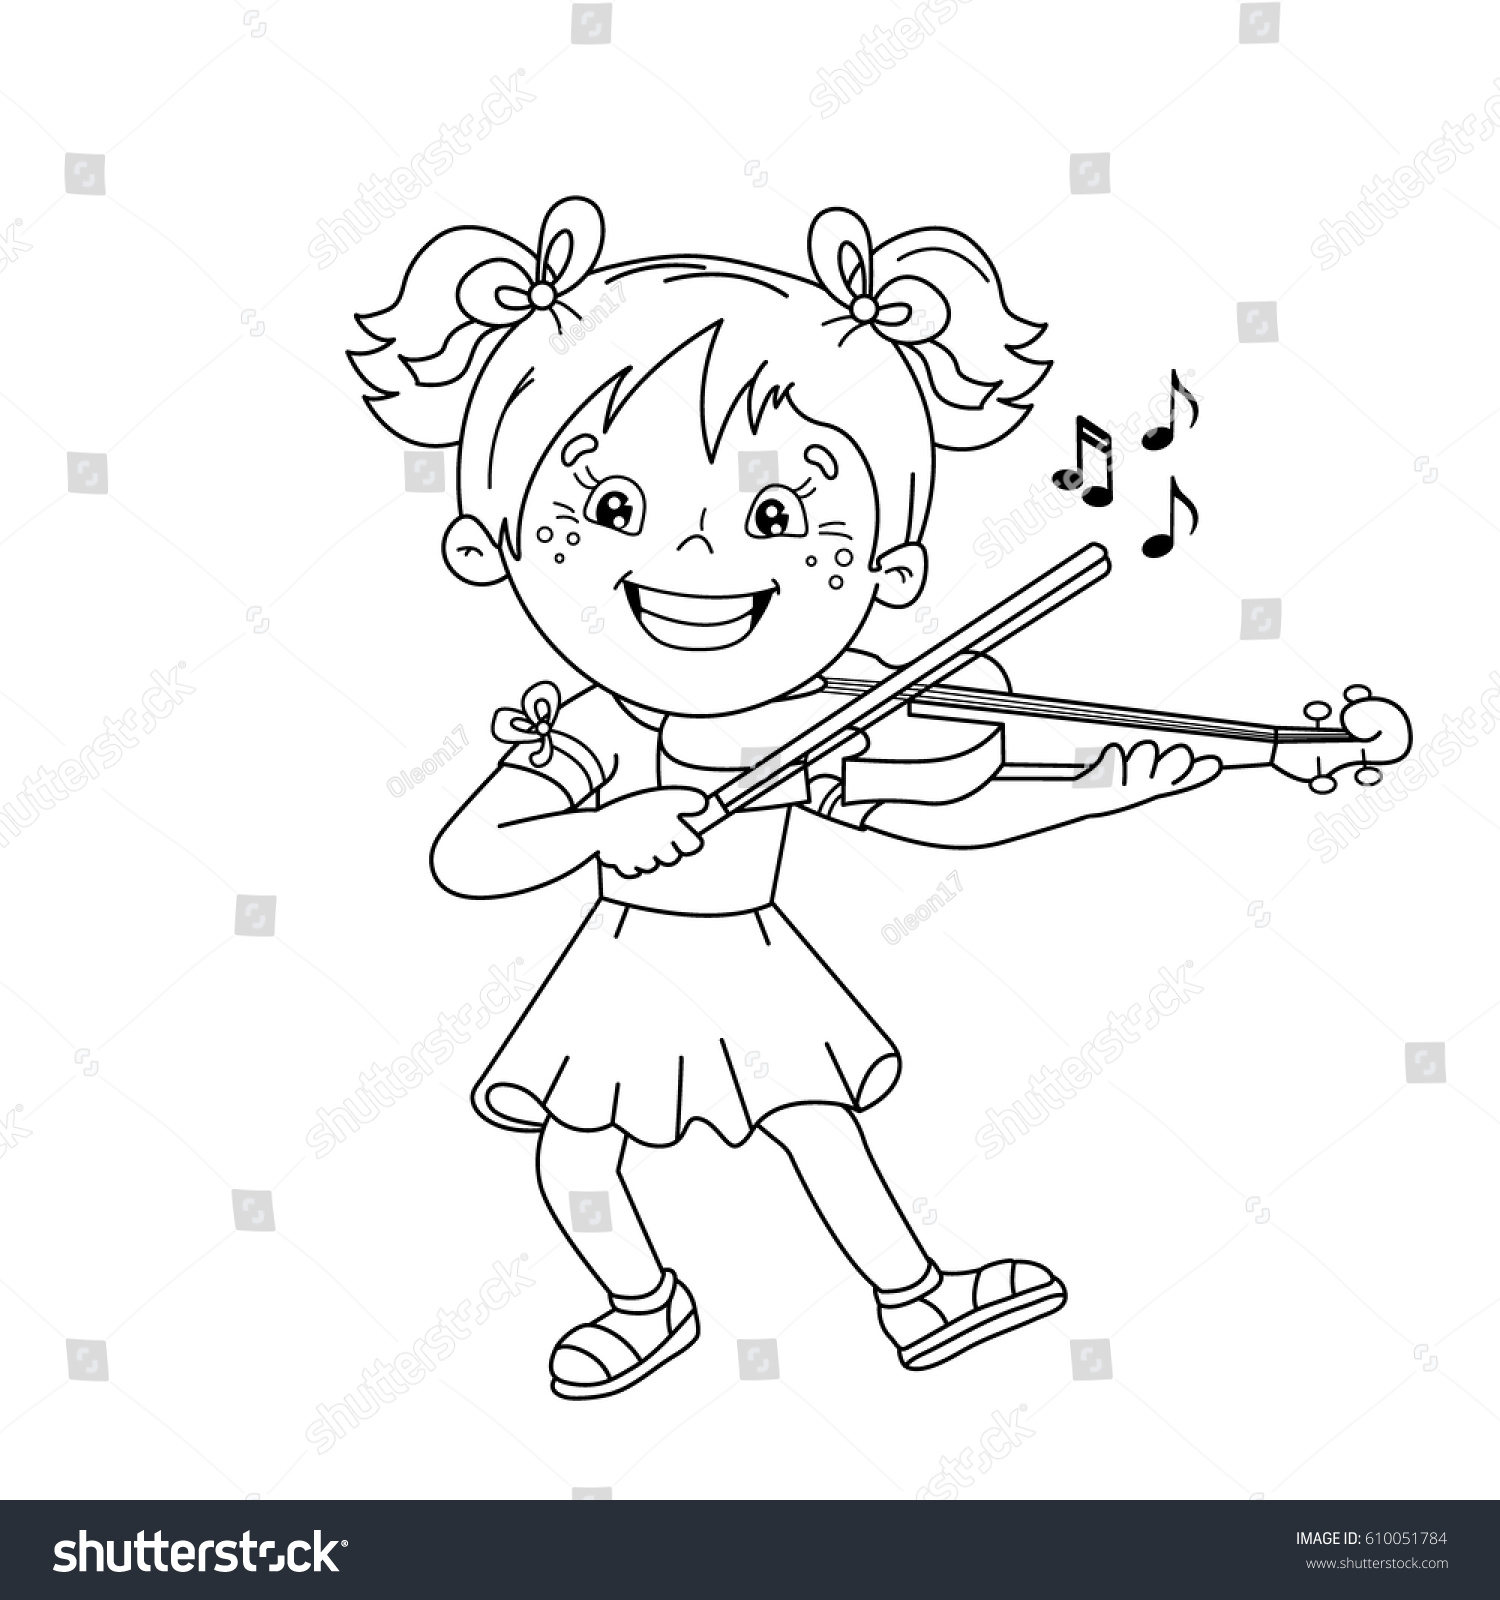 Coloring book for girl - Coloring Page Outline Of Cartoon Girl Playing The Violin Musical Instruments Coloring Book For